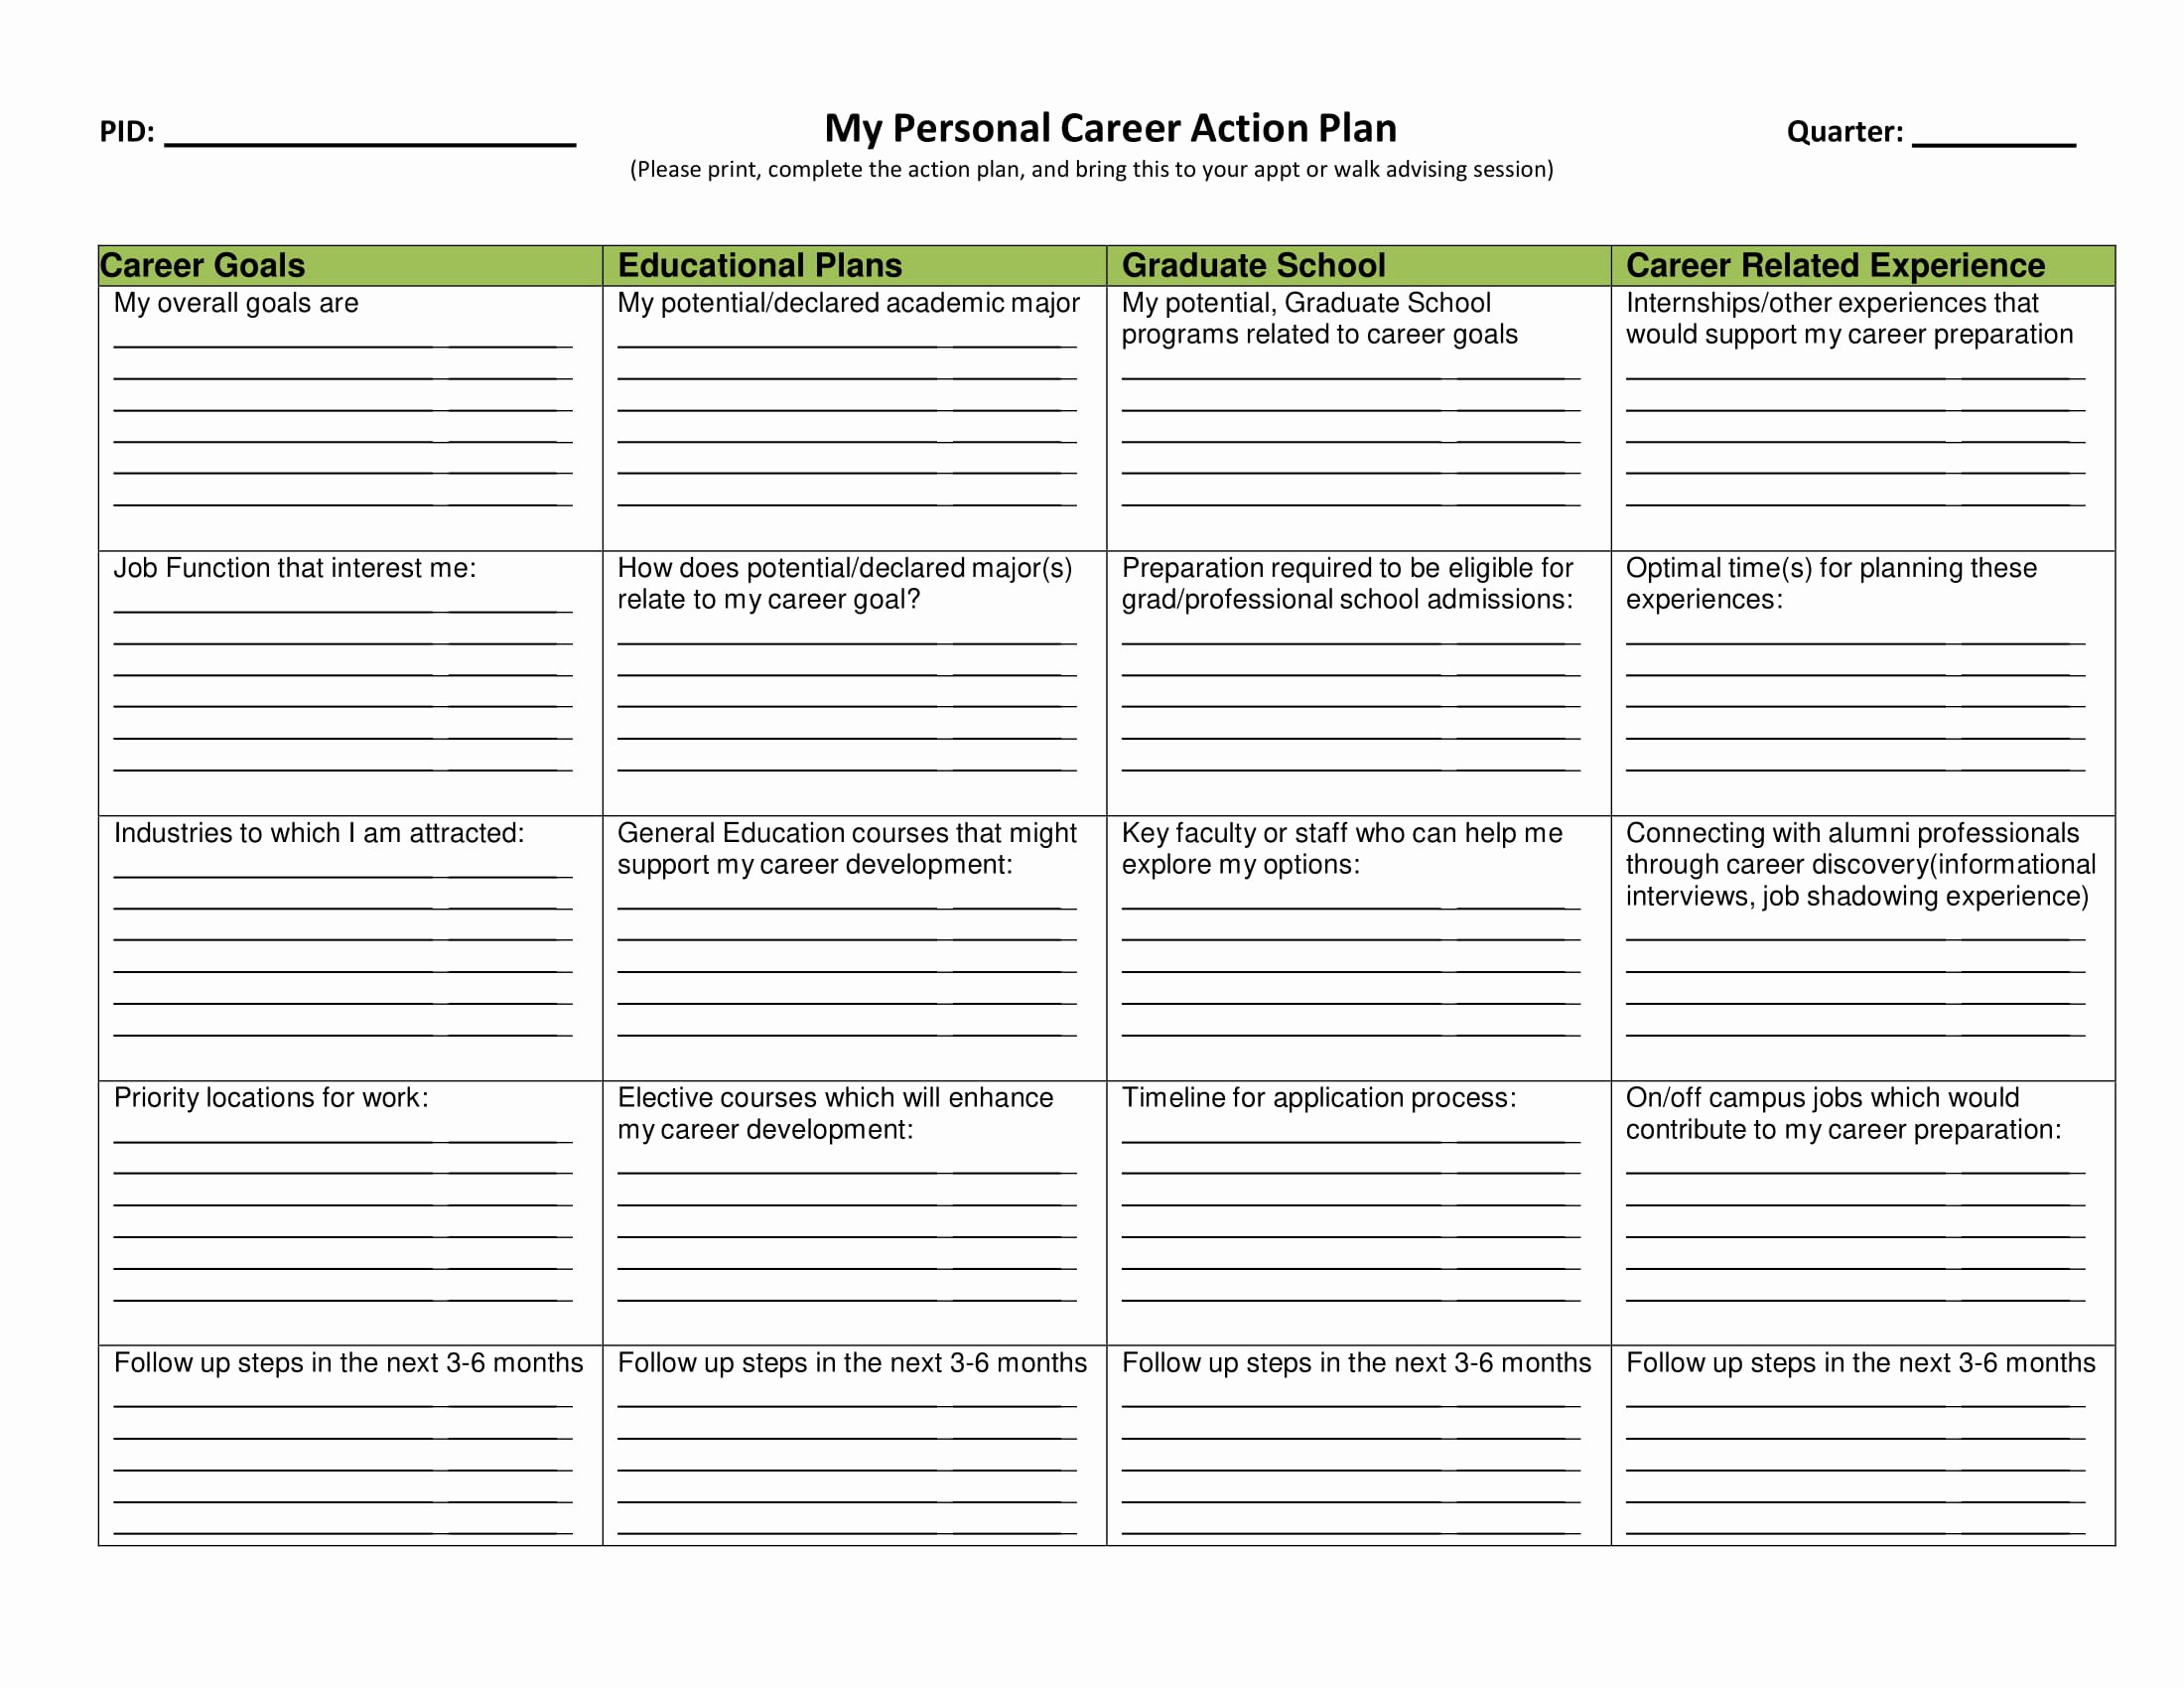 Action Plan Template Education Luxury 9 Career Action Plans Pdf Doc